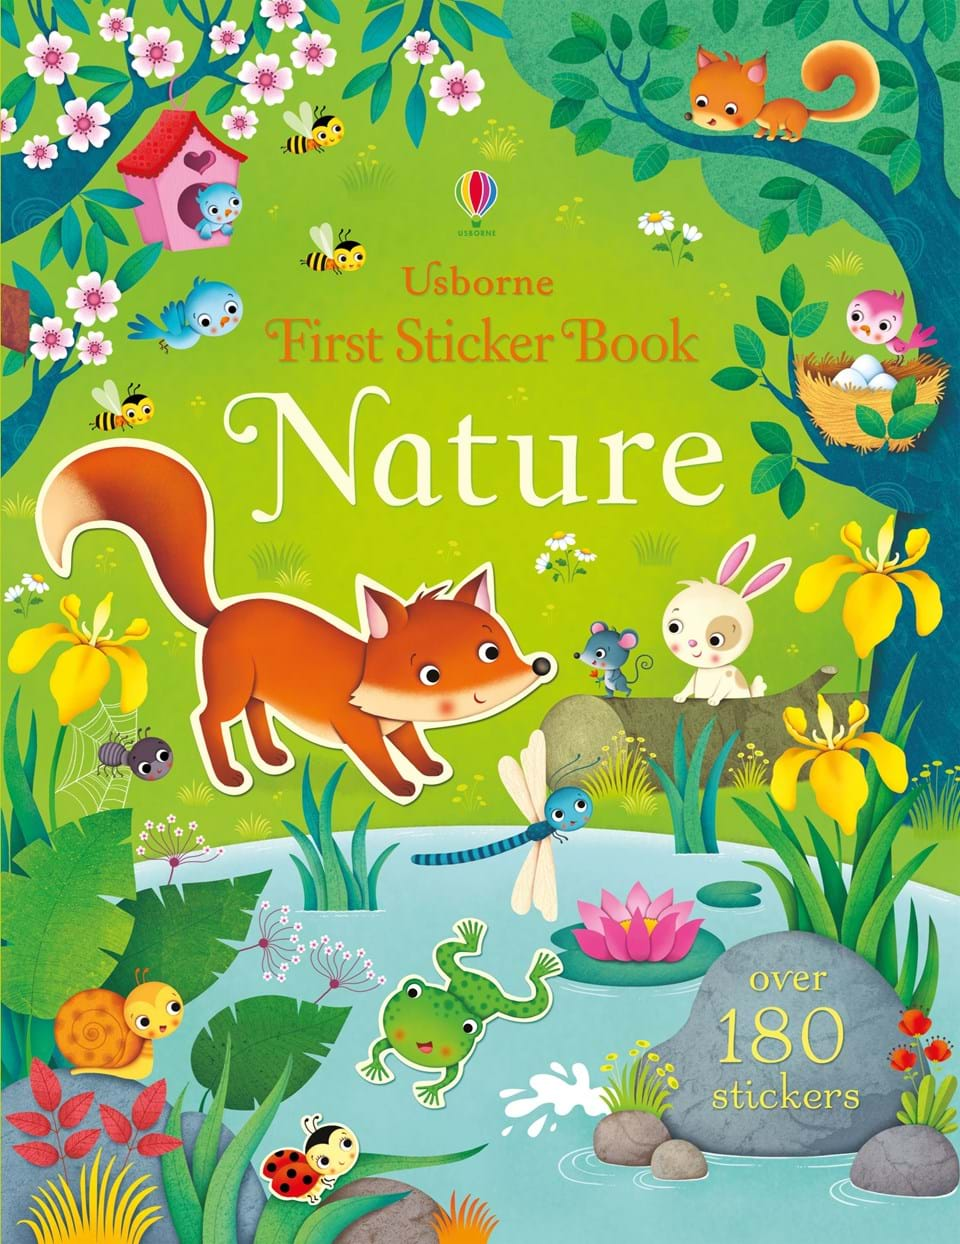 A great sticker book to help learn about nature